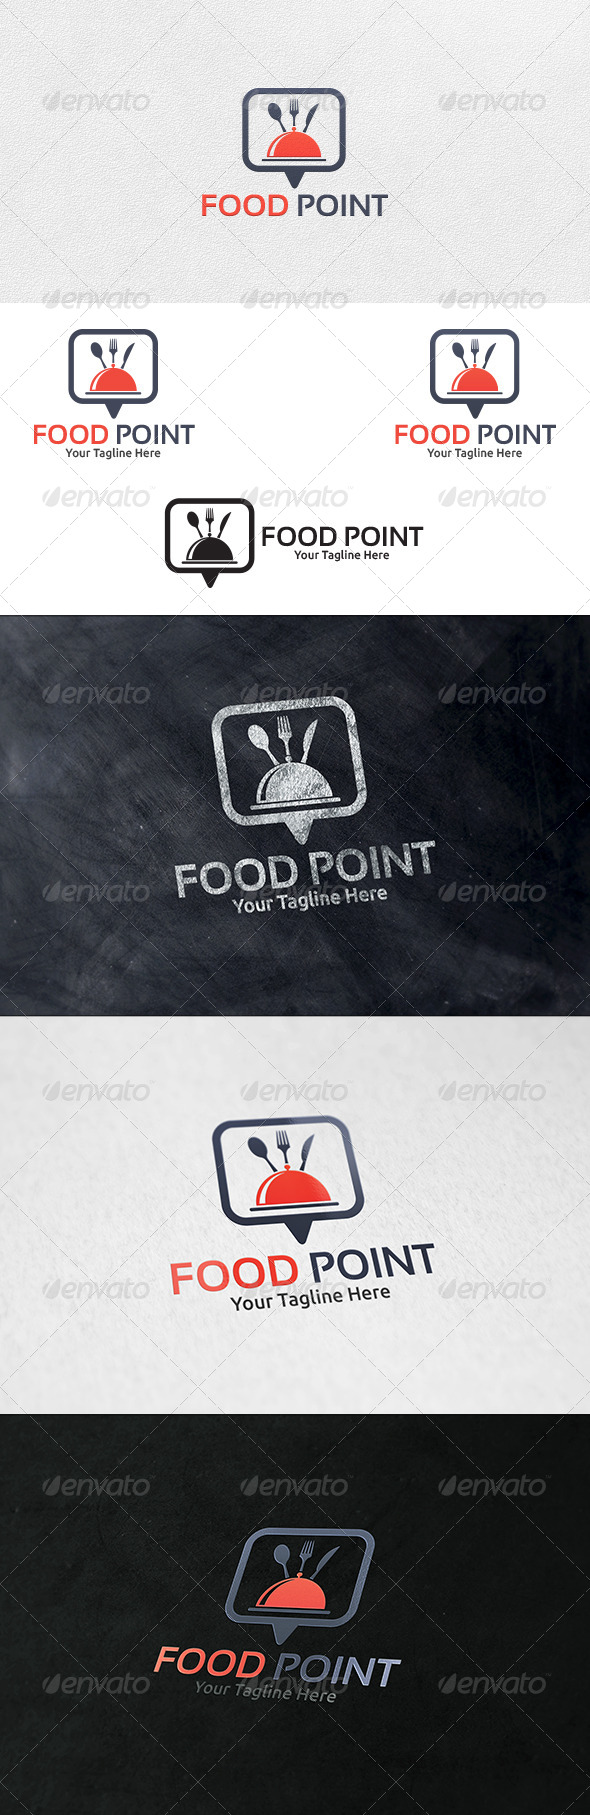 GraphicRiver Food Point V2 Logo Template 7110801